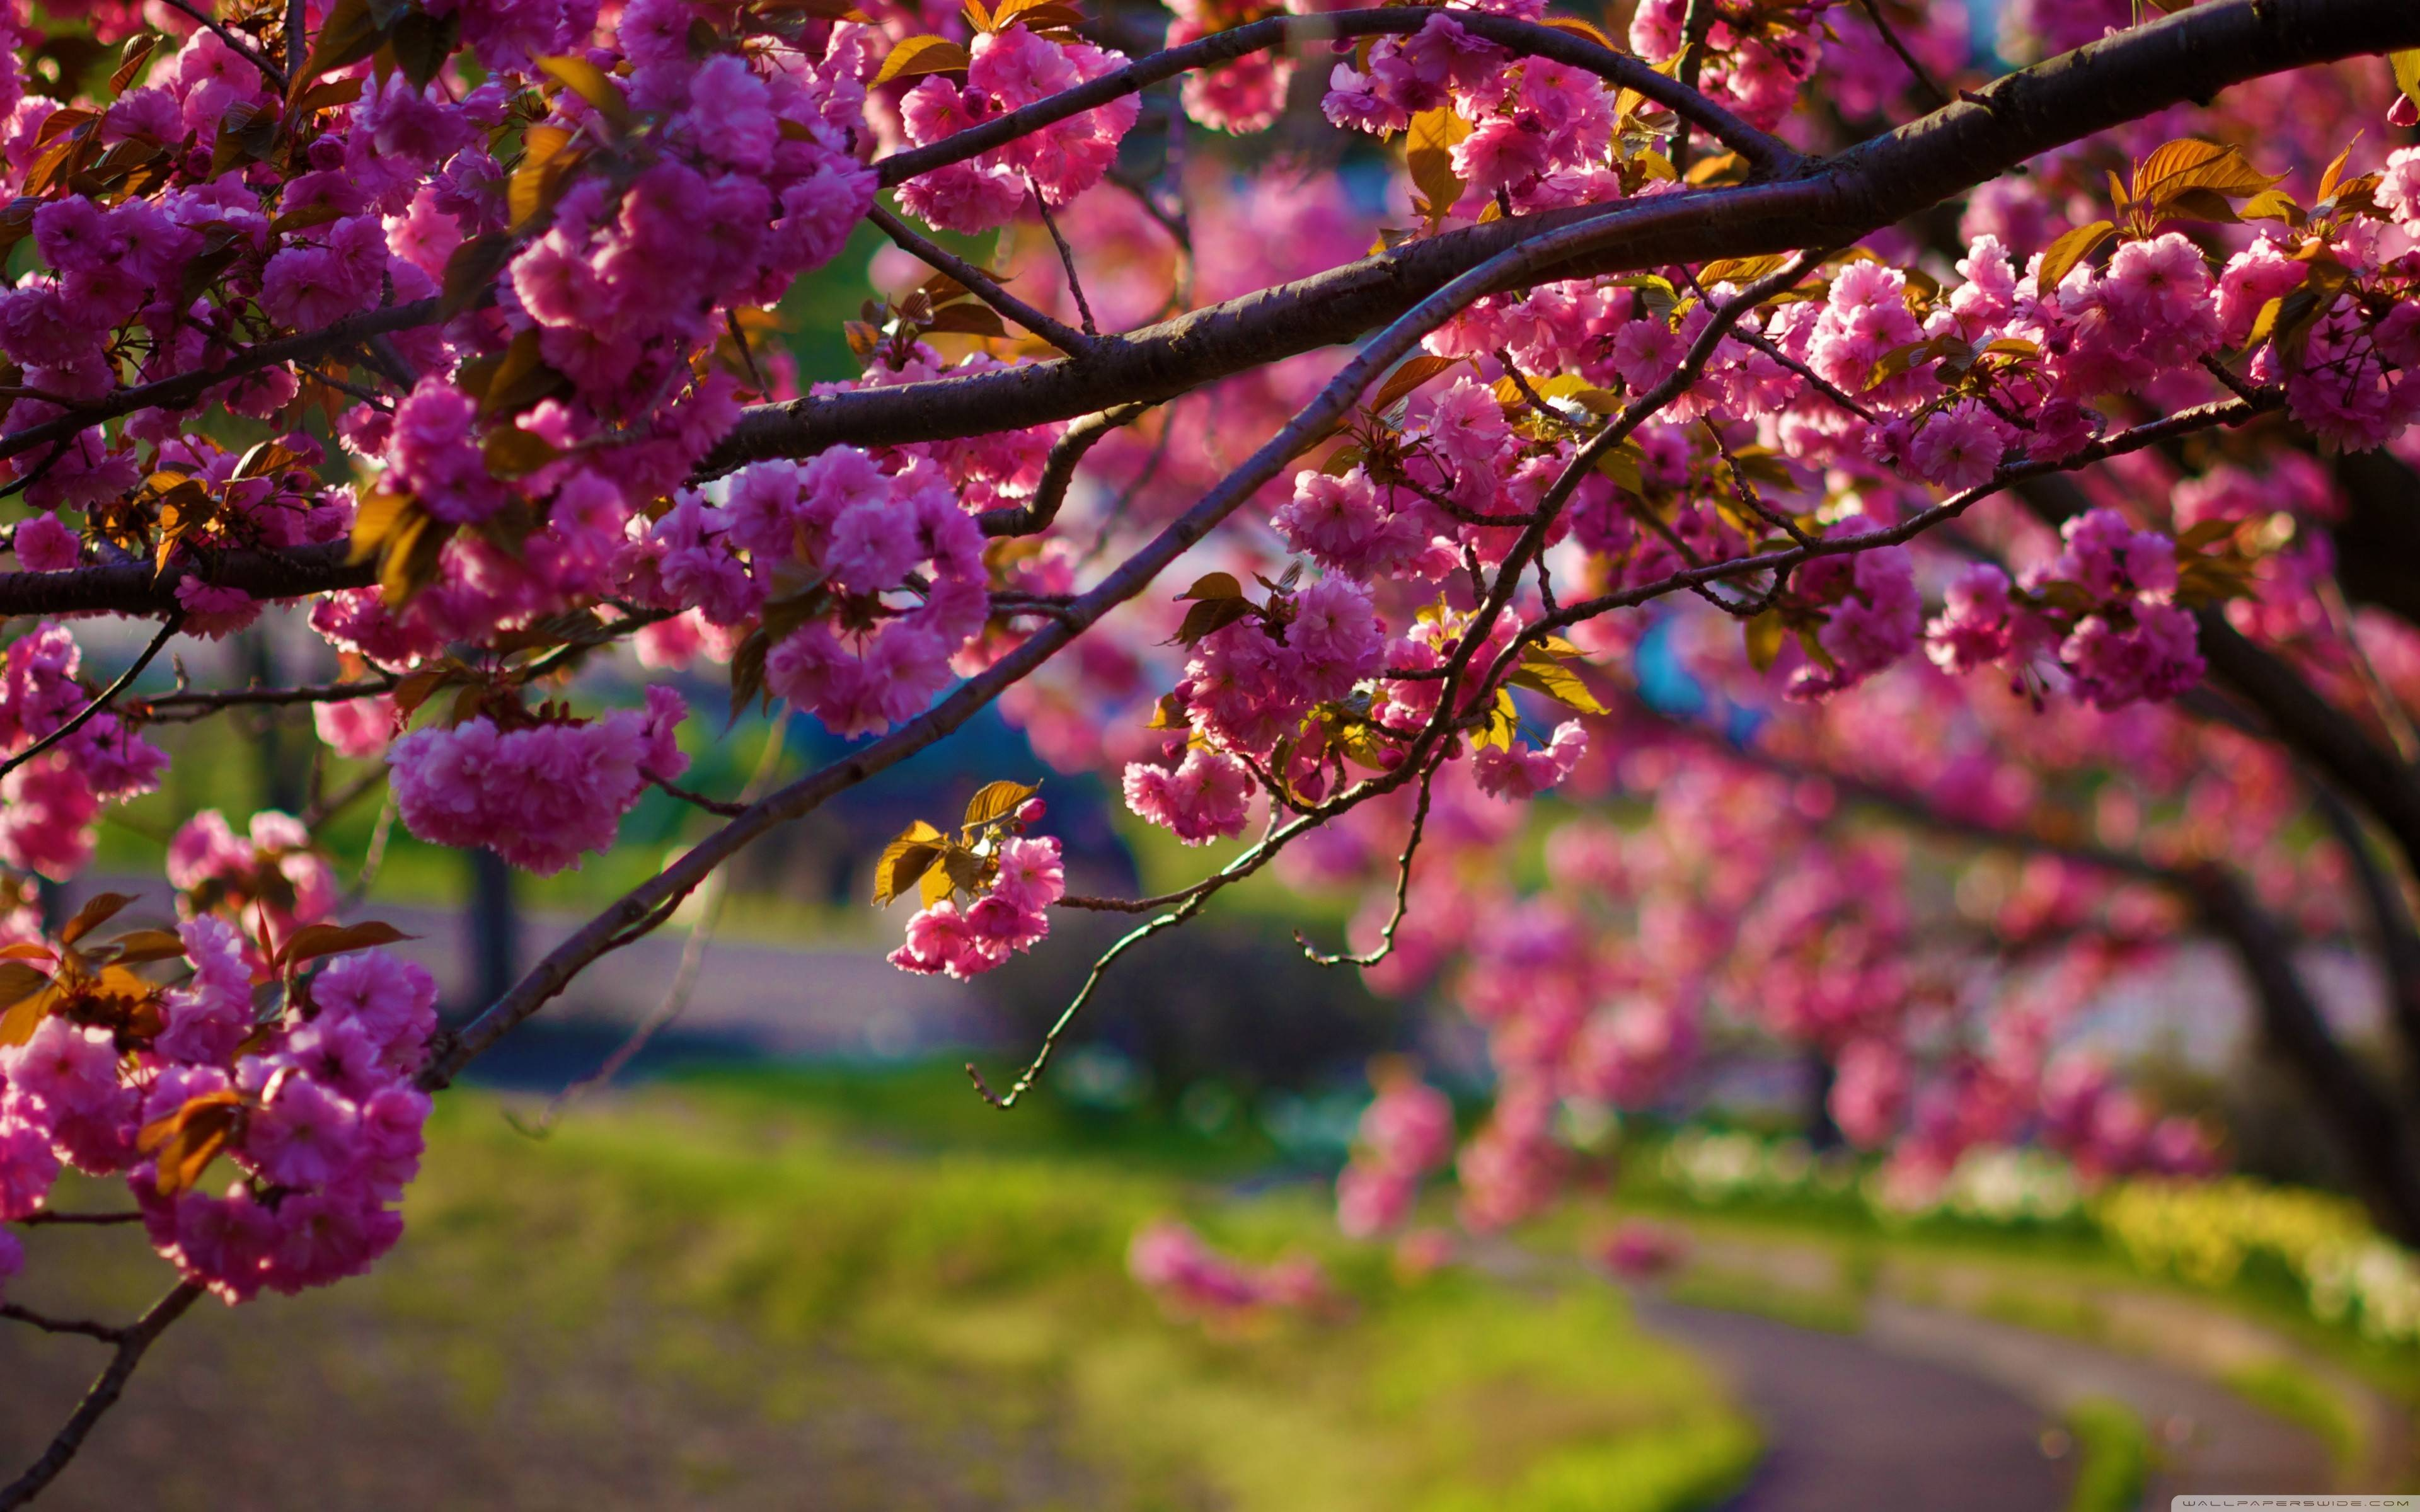 Spring Nature Wallpapers   Top Spring Nature Backgrounds 3840x2400